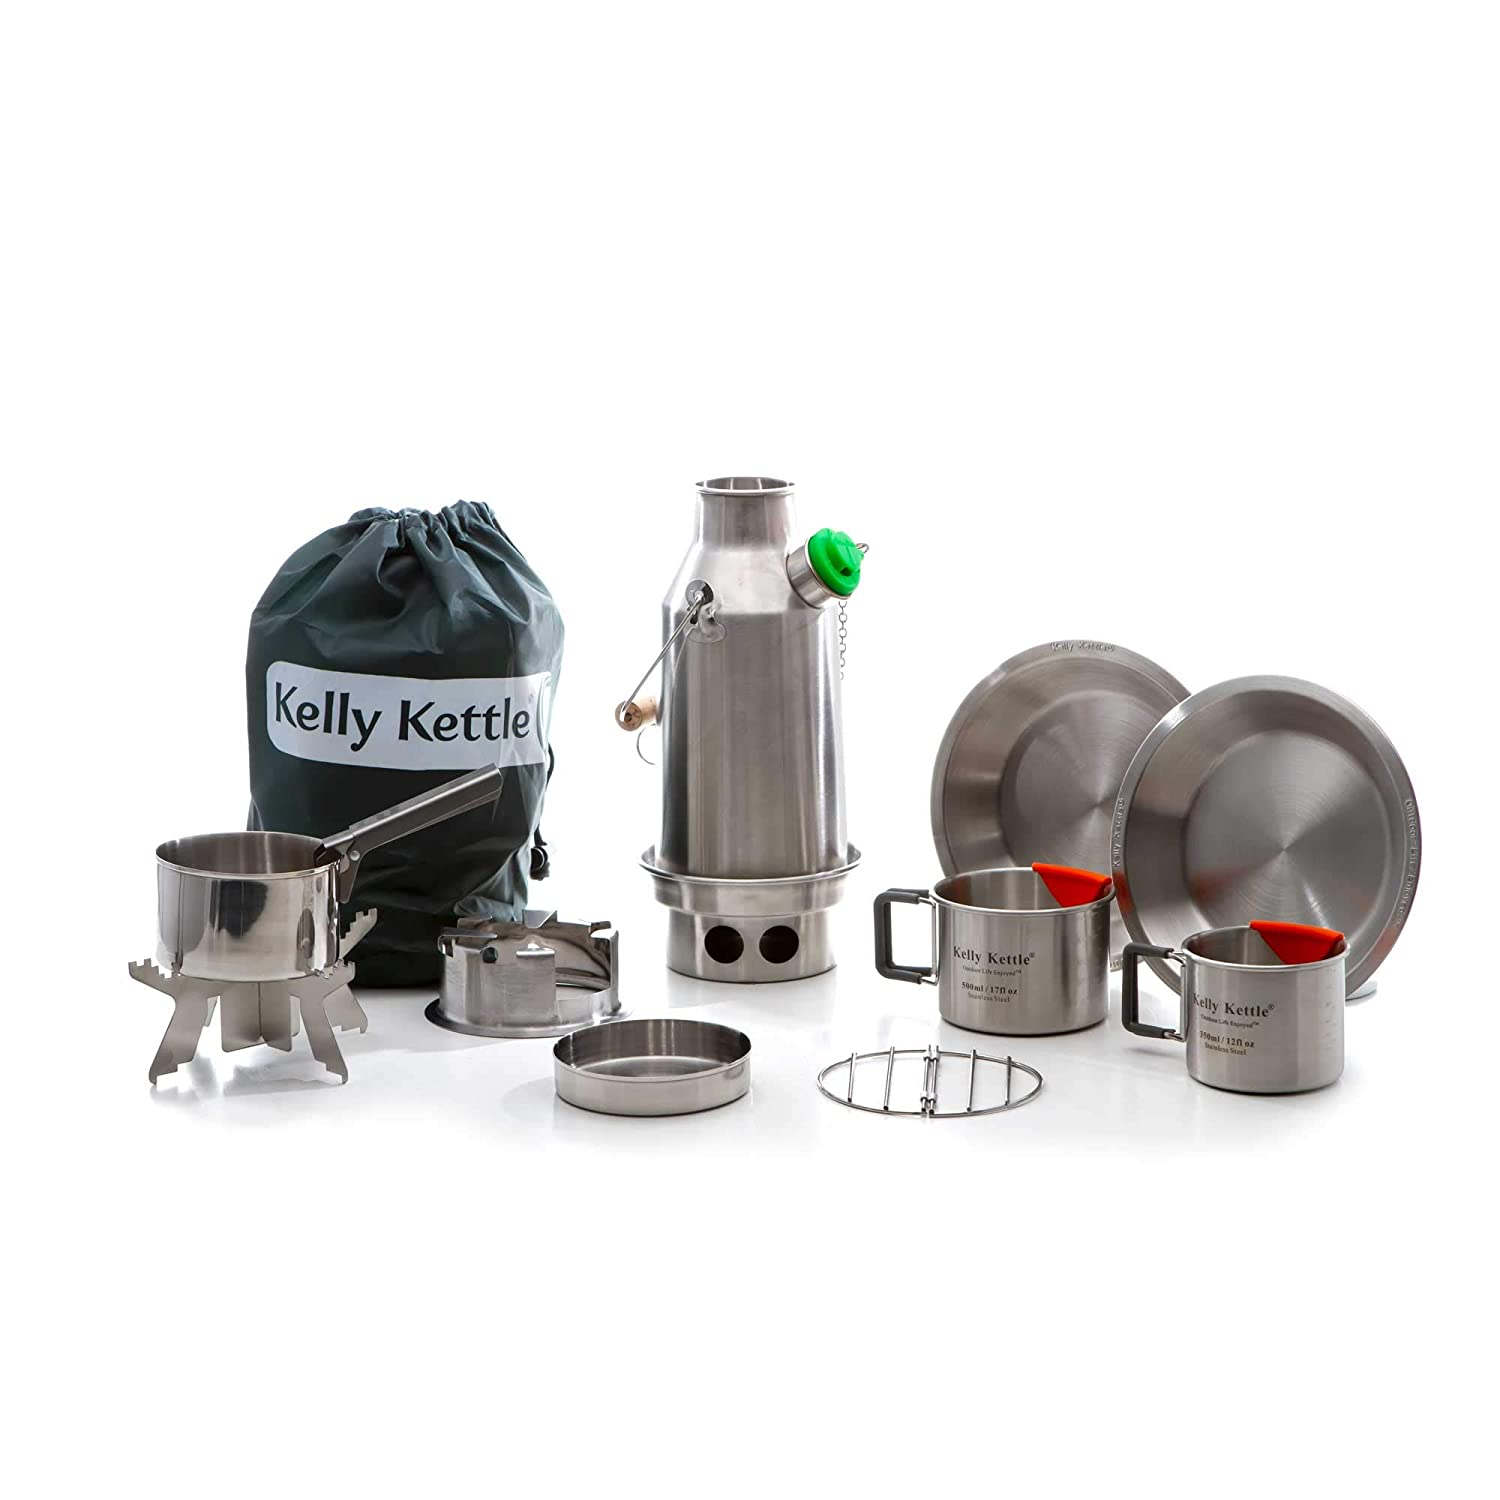 Kelly Kettle Trekker 20 oz. Stainless Steel Ultimate Kit 0.6 LTR Rocket Stove Boils Water Ultra Fast with just Sticks Twigs. for Camping, Fishing, Scouts, Hunting, Emergencies, Hurricanes, Tornados